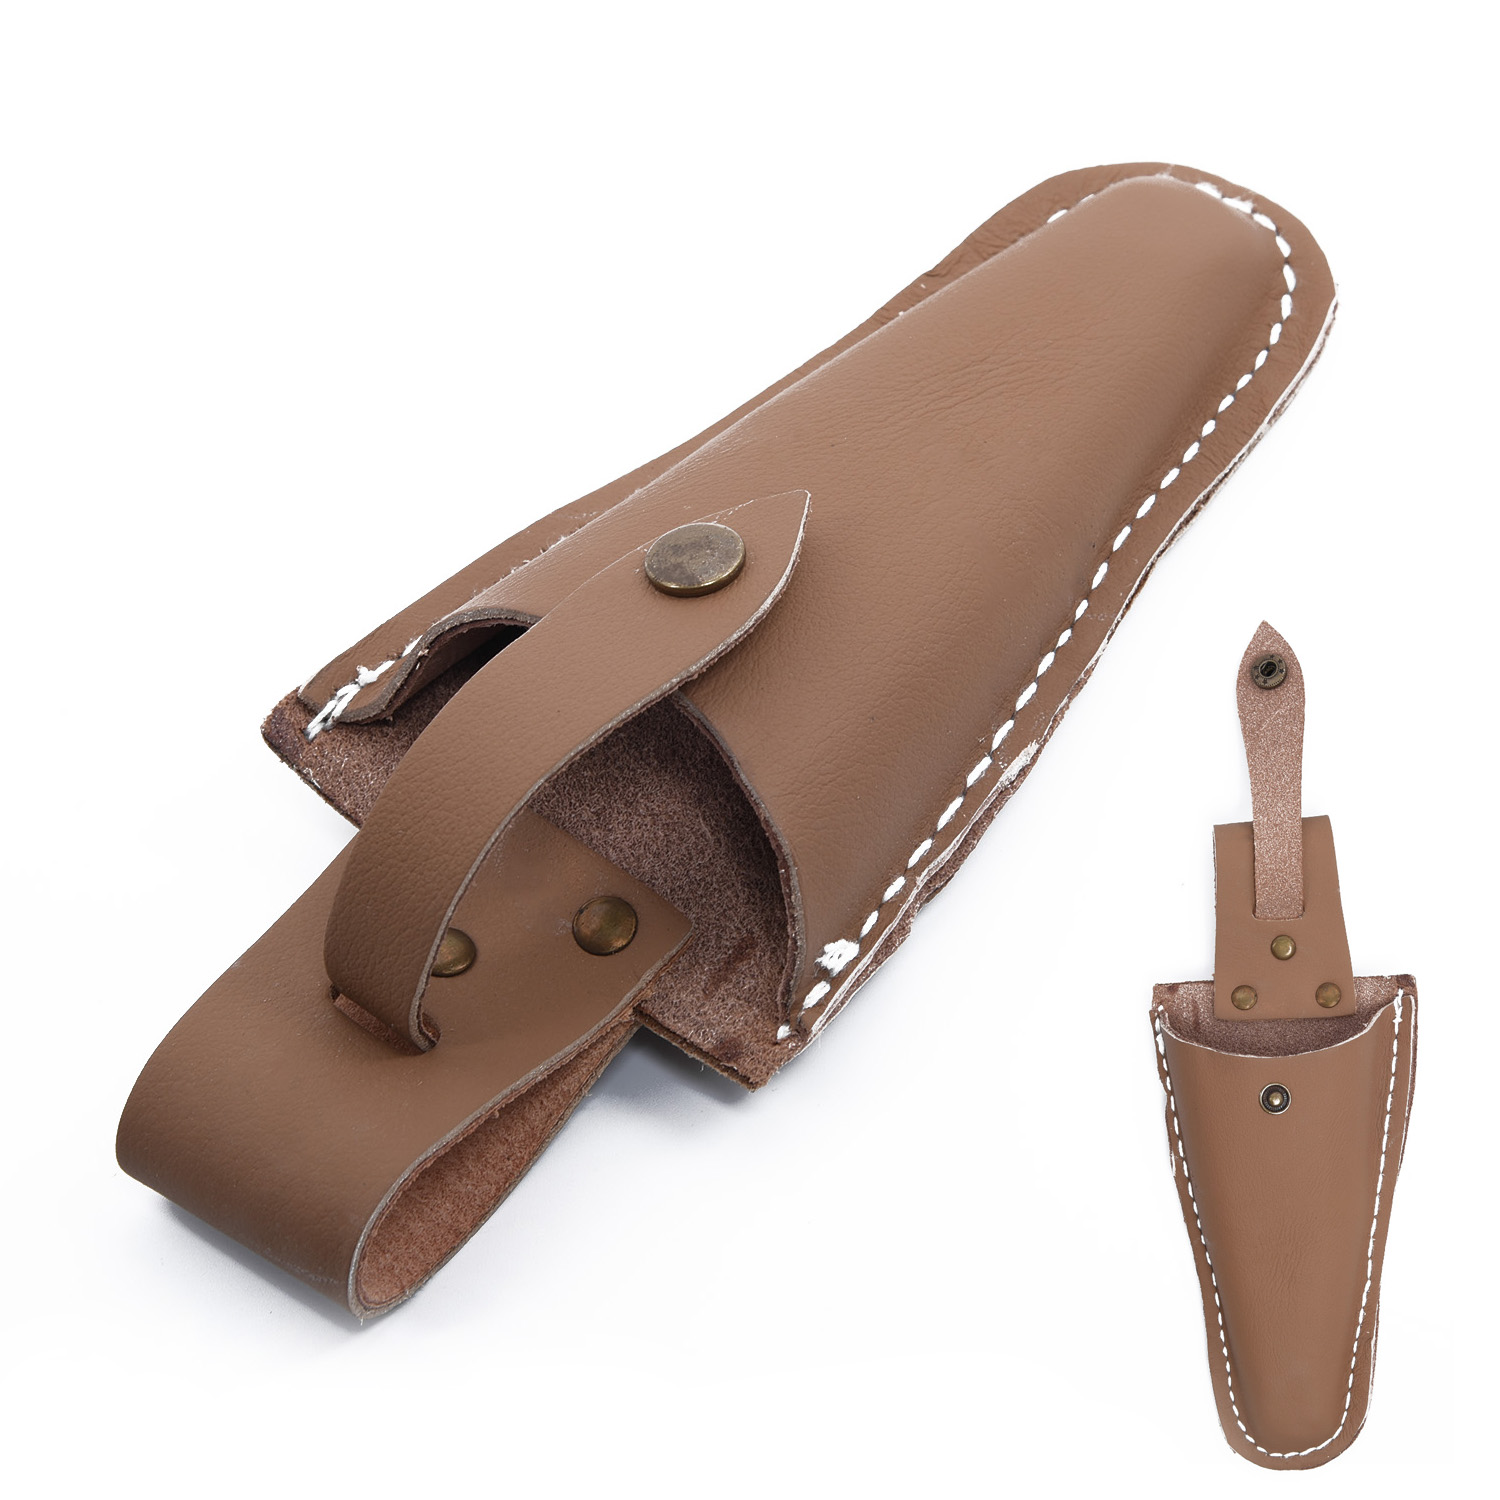 1*Leather Sheath Set Holsters Gardening Pouch Belt Electrician Scissors Brown